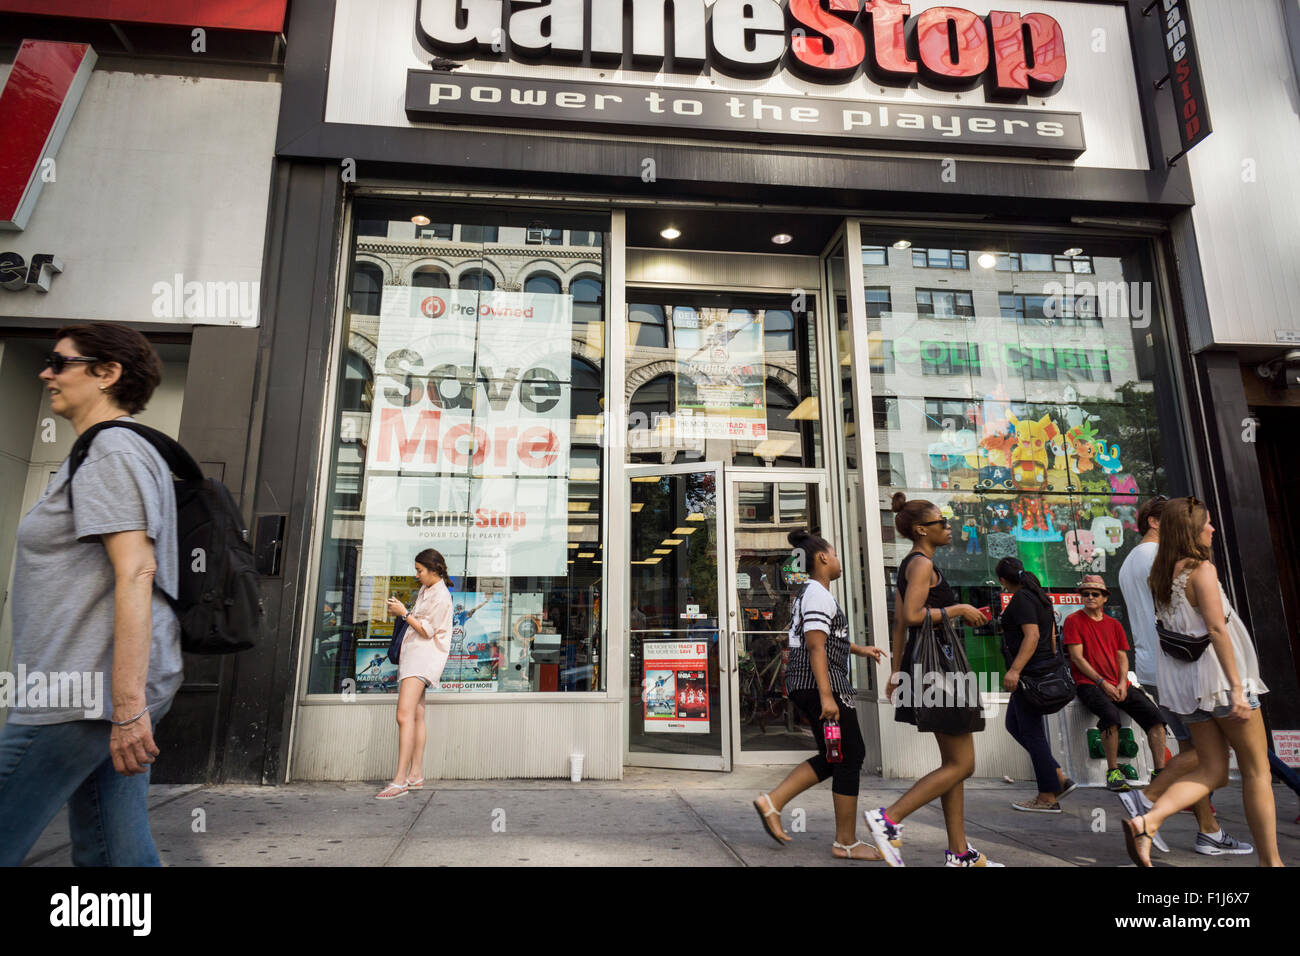 A GameStop video game store in New York on Saturday, August